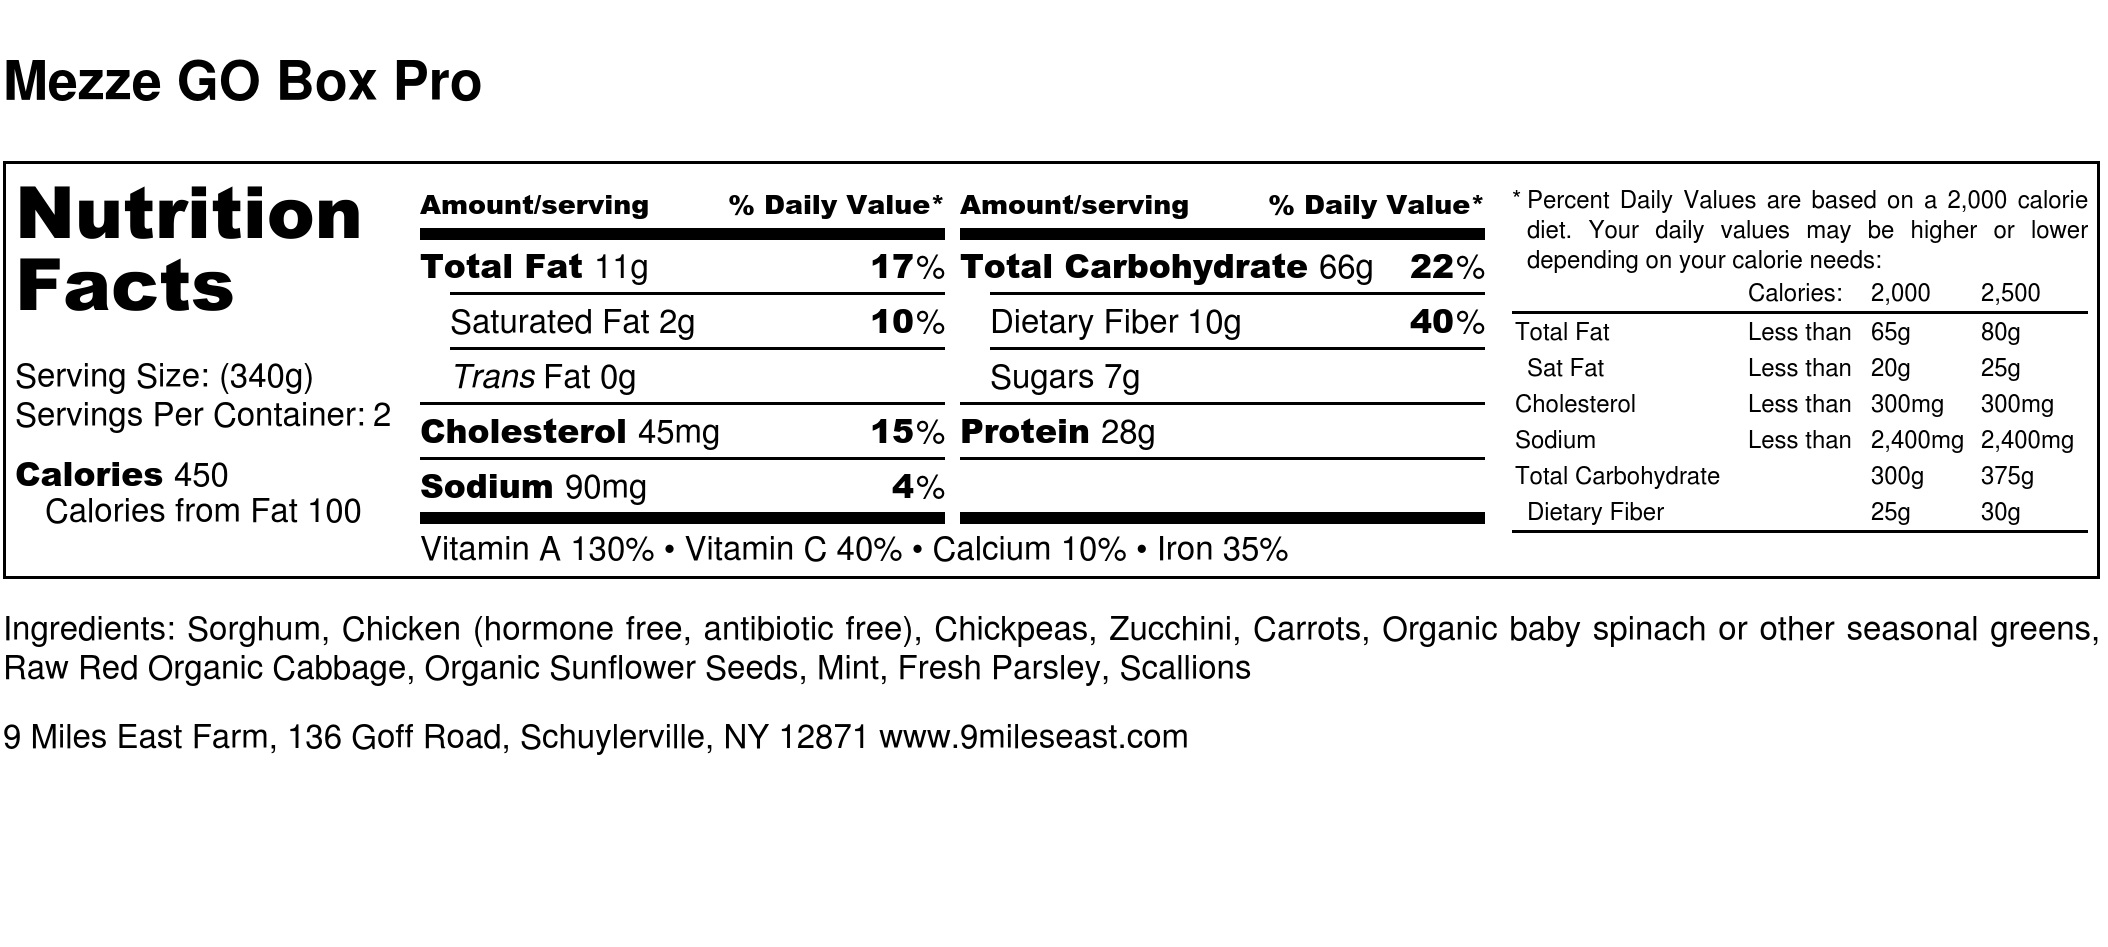 Mezze GO Box Pro - Nutrition Label.jpg